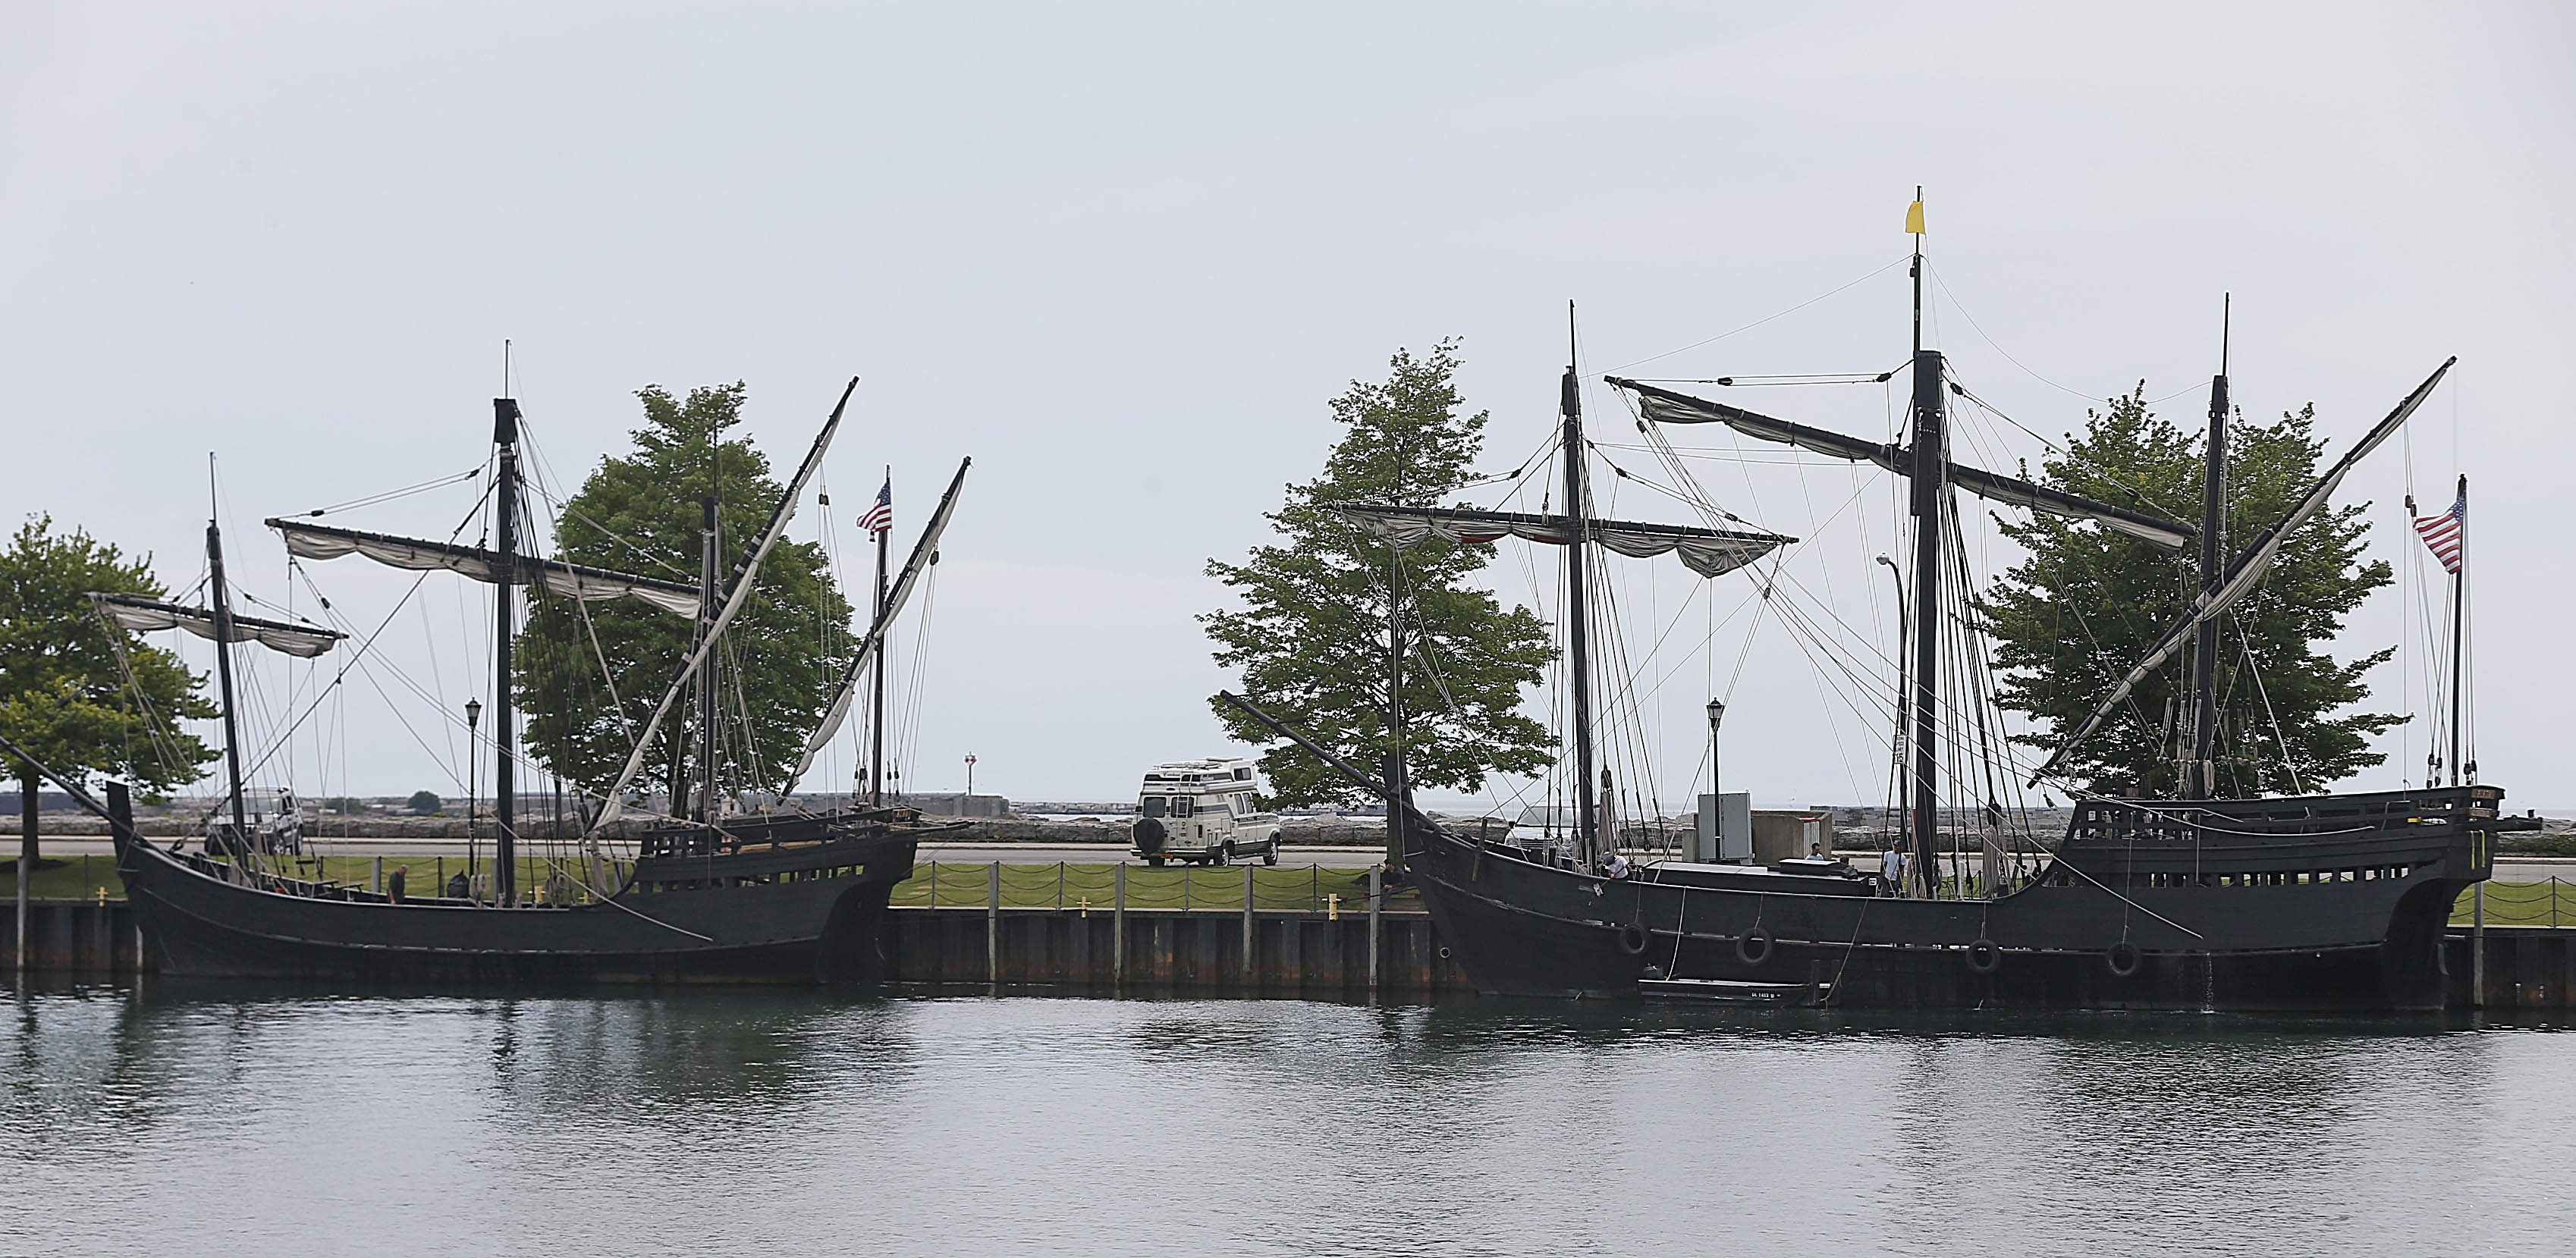 The Pinta, right, and the Nina,  two replica ships depicting the Christopher Columbus times, docked at the Erie Basin Marina after a malfunctioning lift bridge prevented their passage through Black Rock Channel. (Robert Kirkham/Buffalo News)